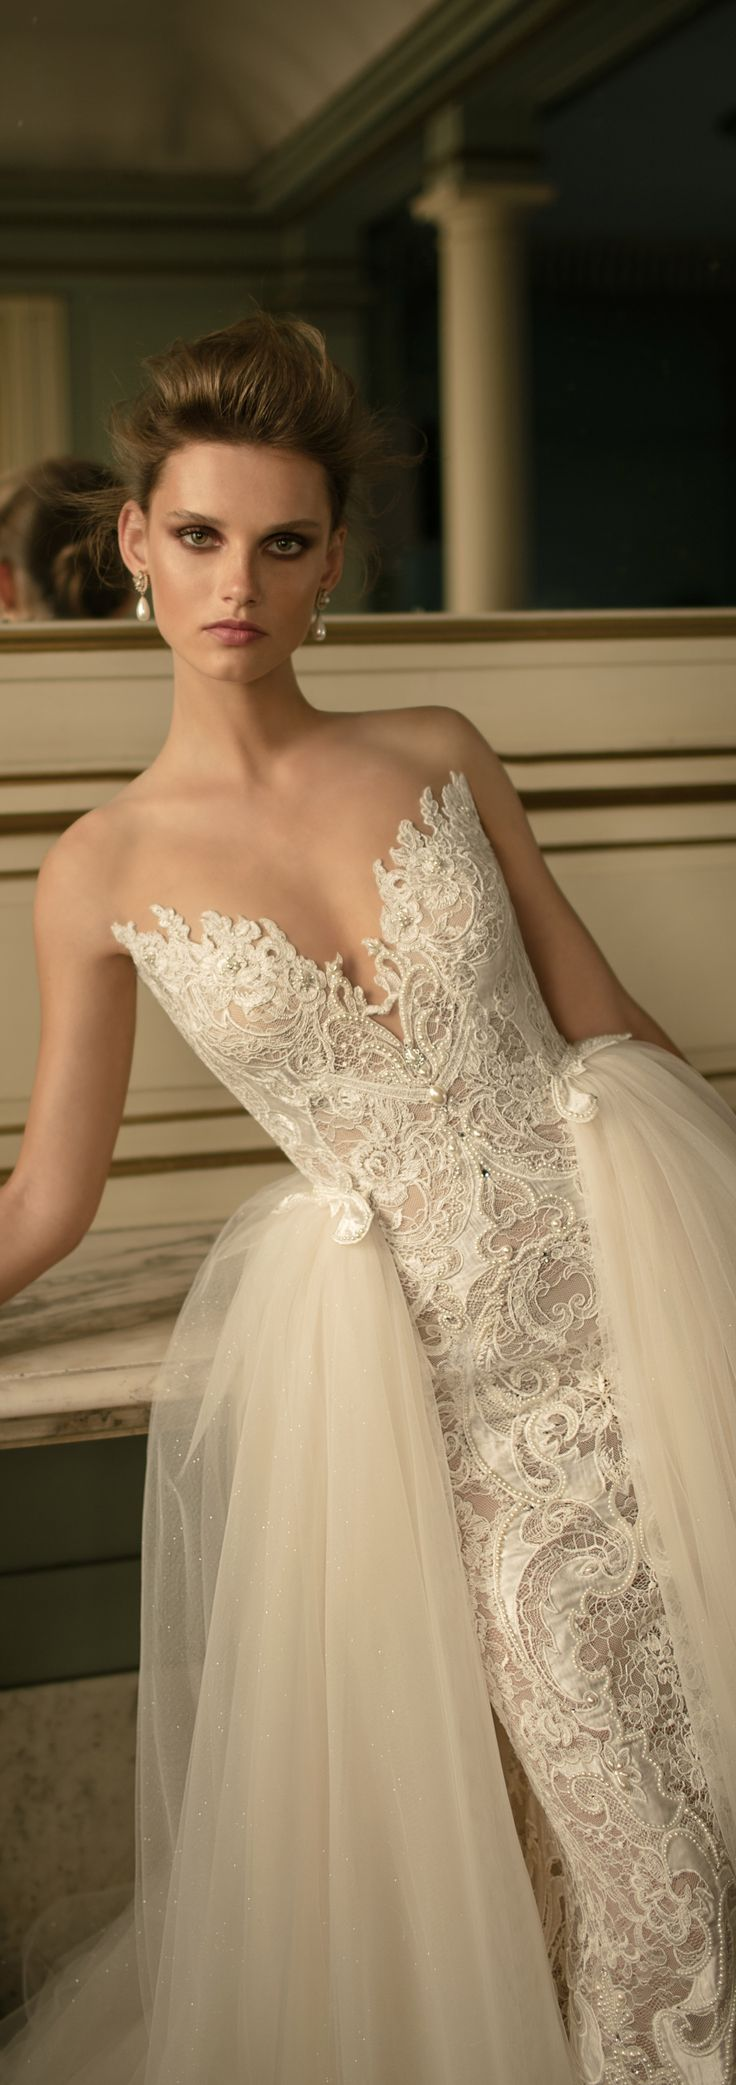 Image Result For Wedding Dress With